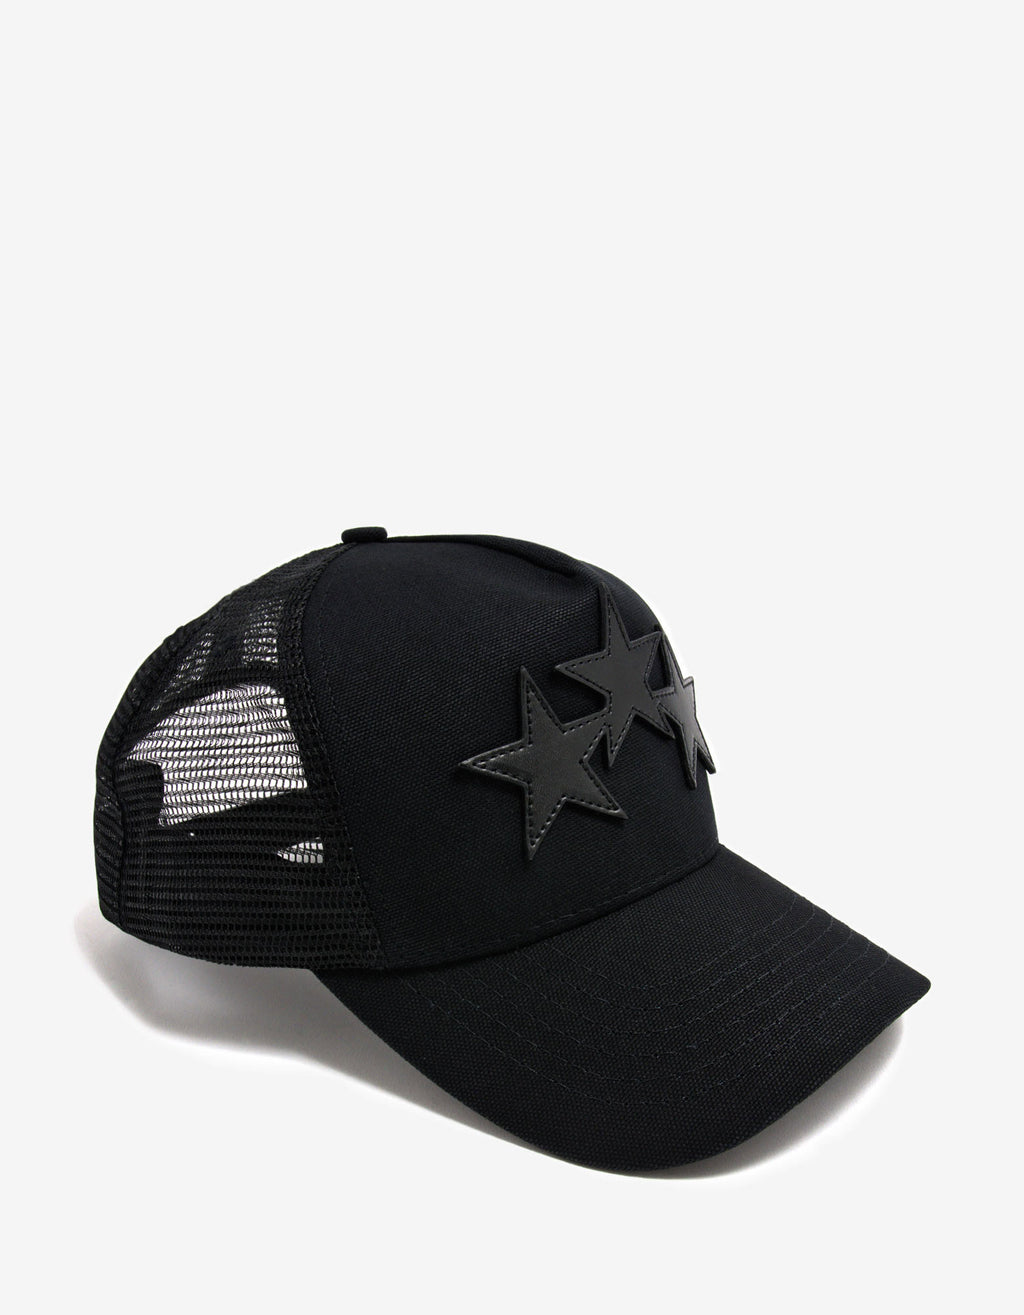 Black 3 Star Trucker Hat